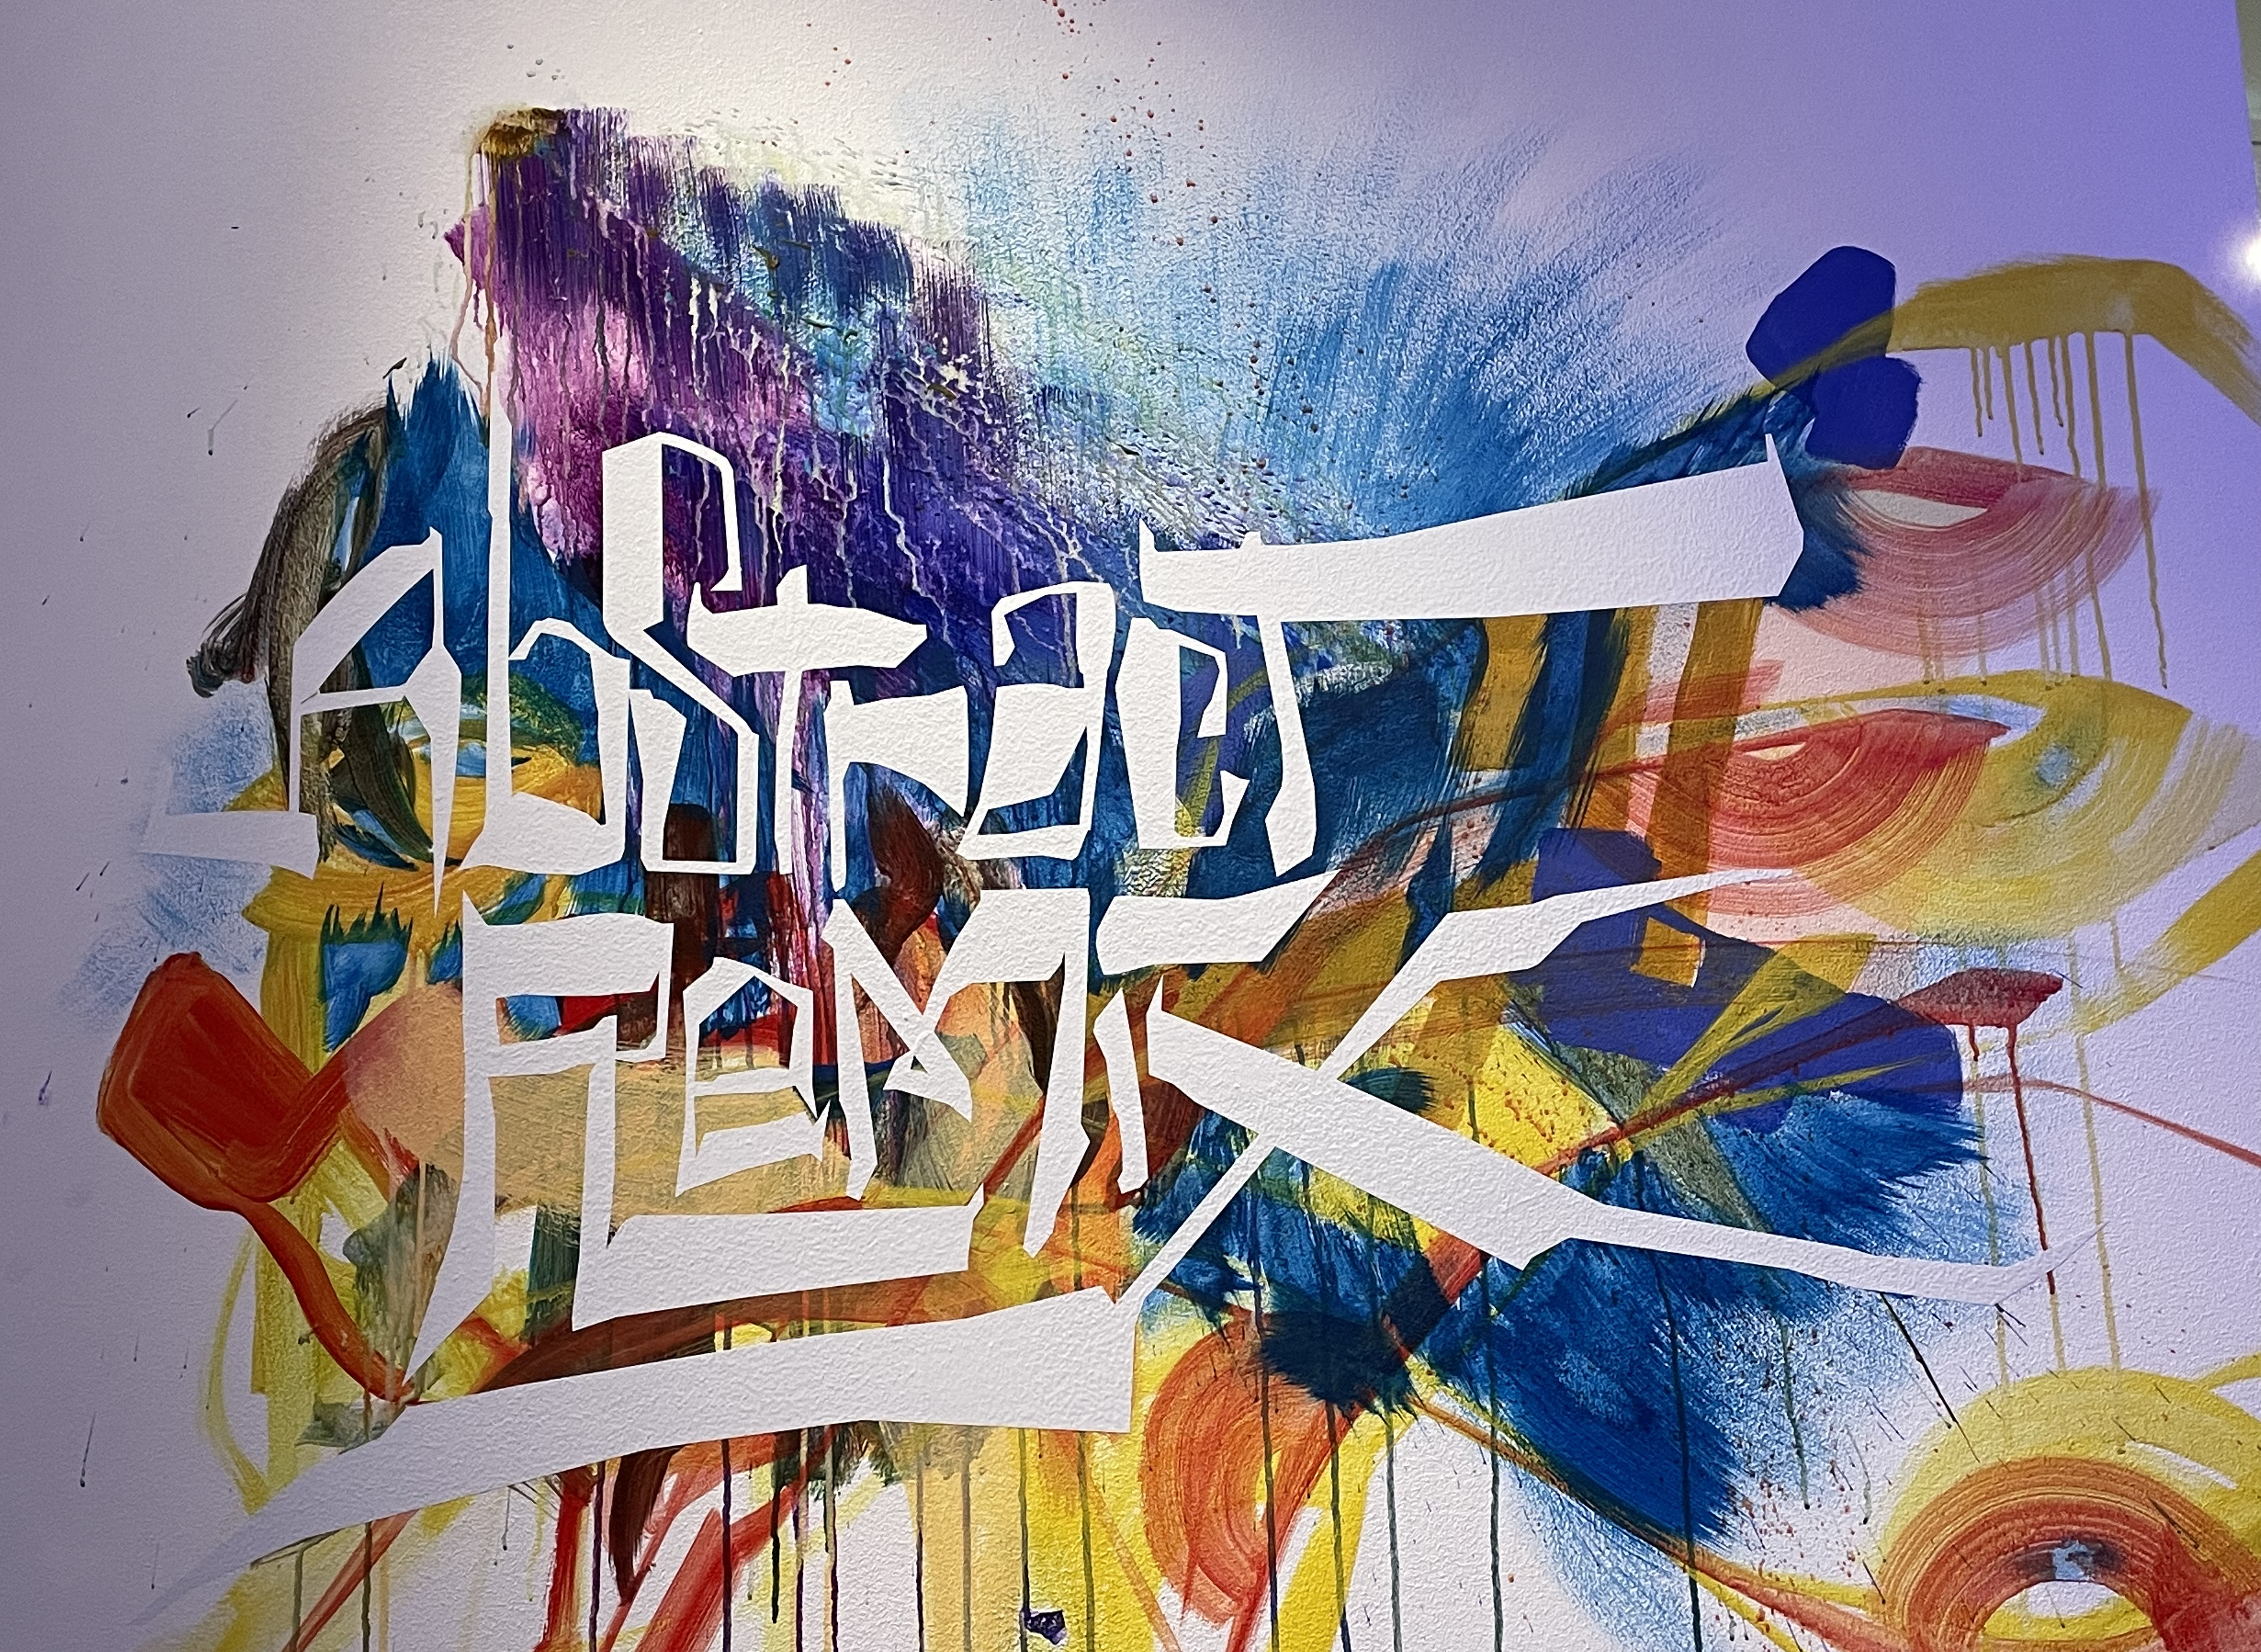 """The words """"abstract remix"""" appear in a white upon a wall smeared and splattered with colorful paint"""